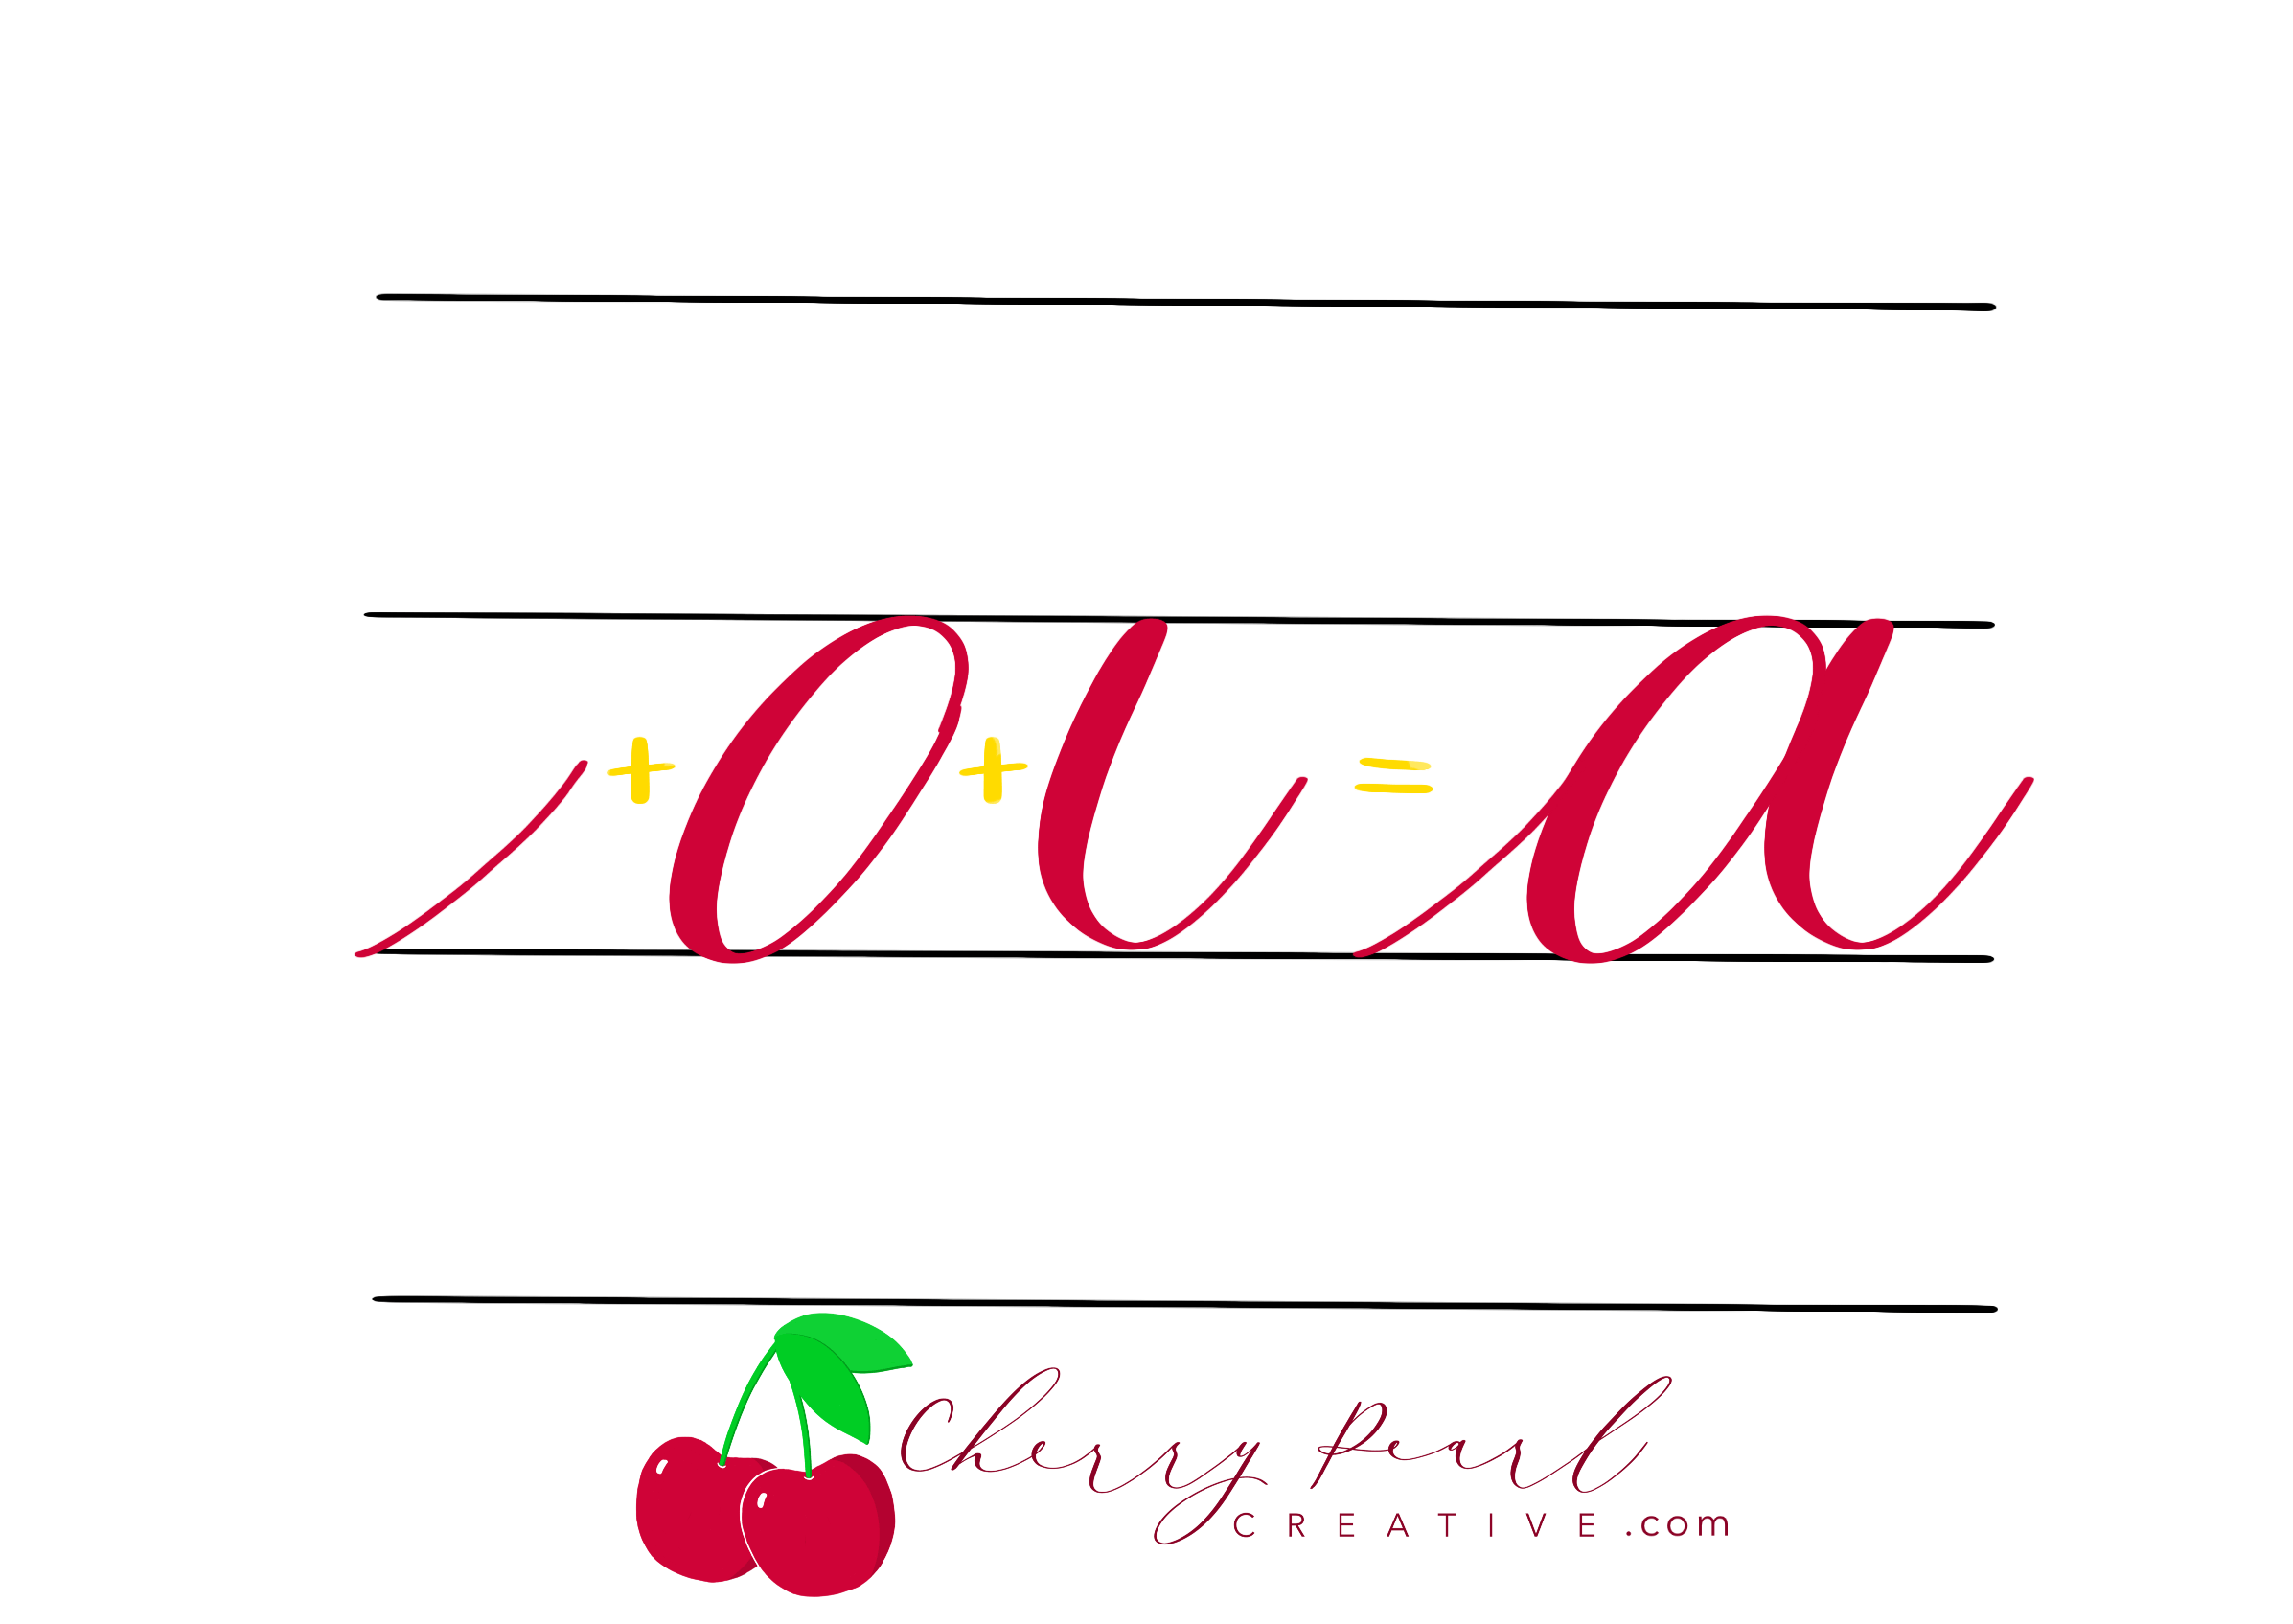 Cherry Pearl Creative - Brush Calligraphy Lowercase A with Basic Strokes